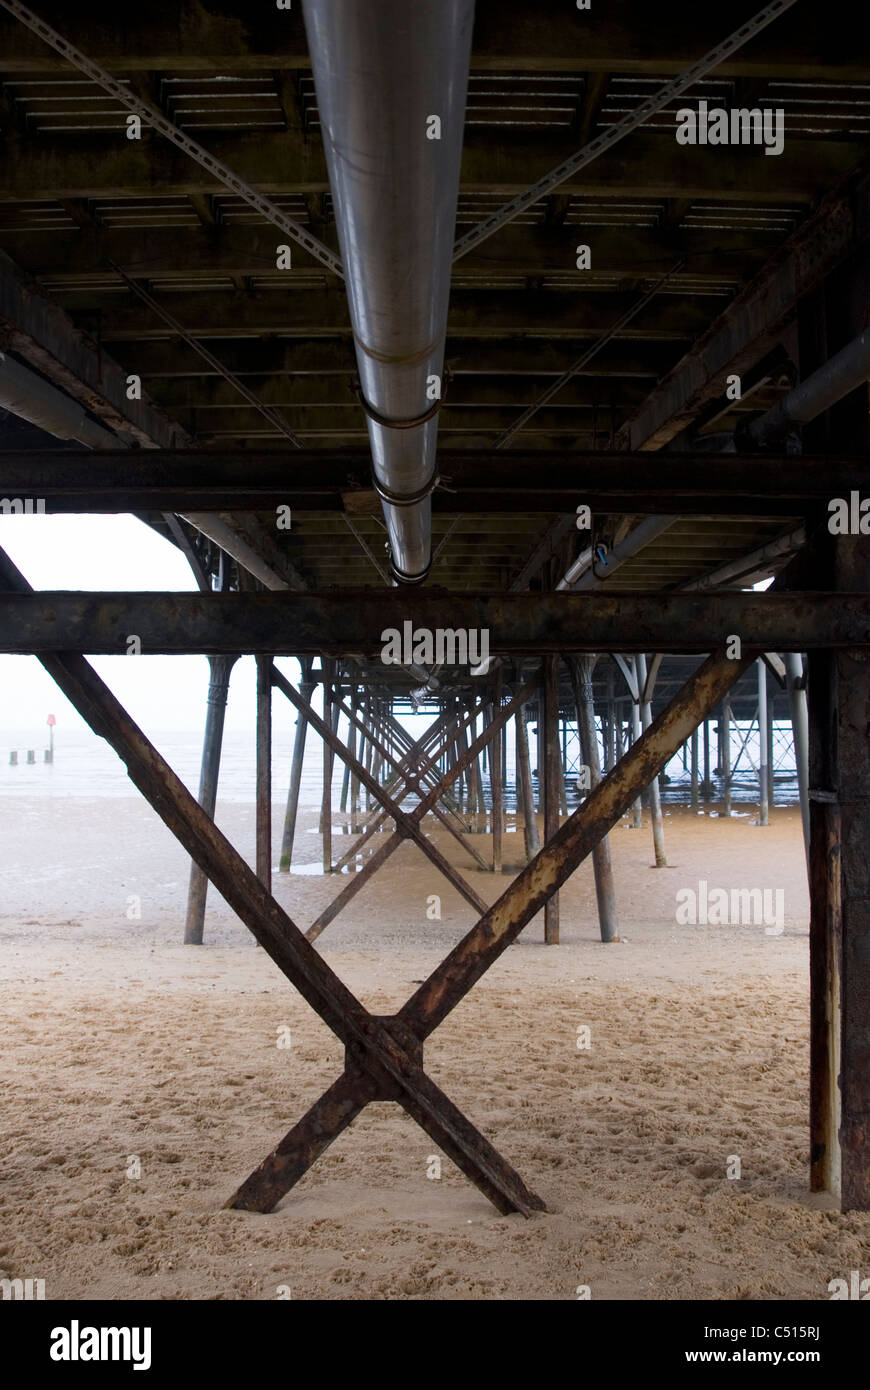 Steel Girders, Legs and Structural Supports Underneath The Pier, Cleethorpes, South Humberside UK - Stock Image